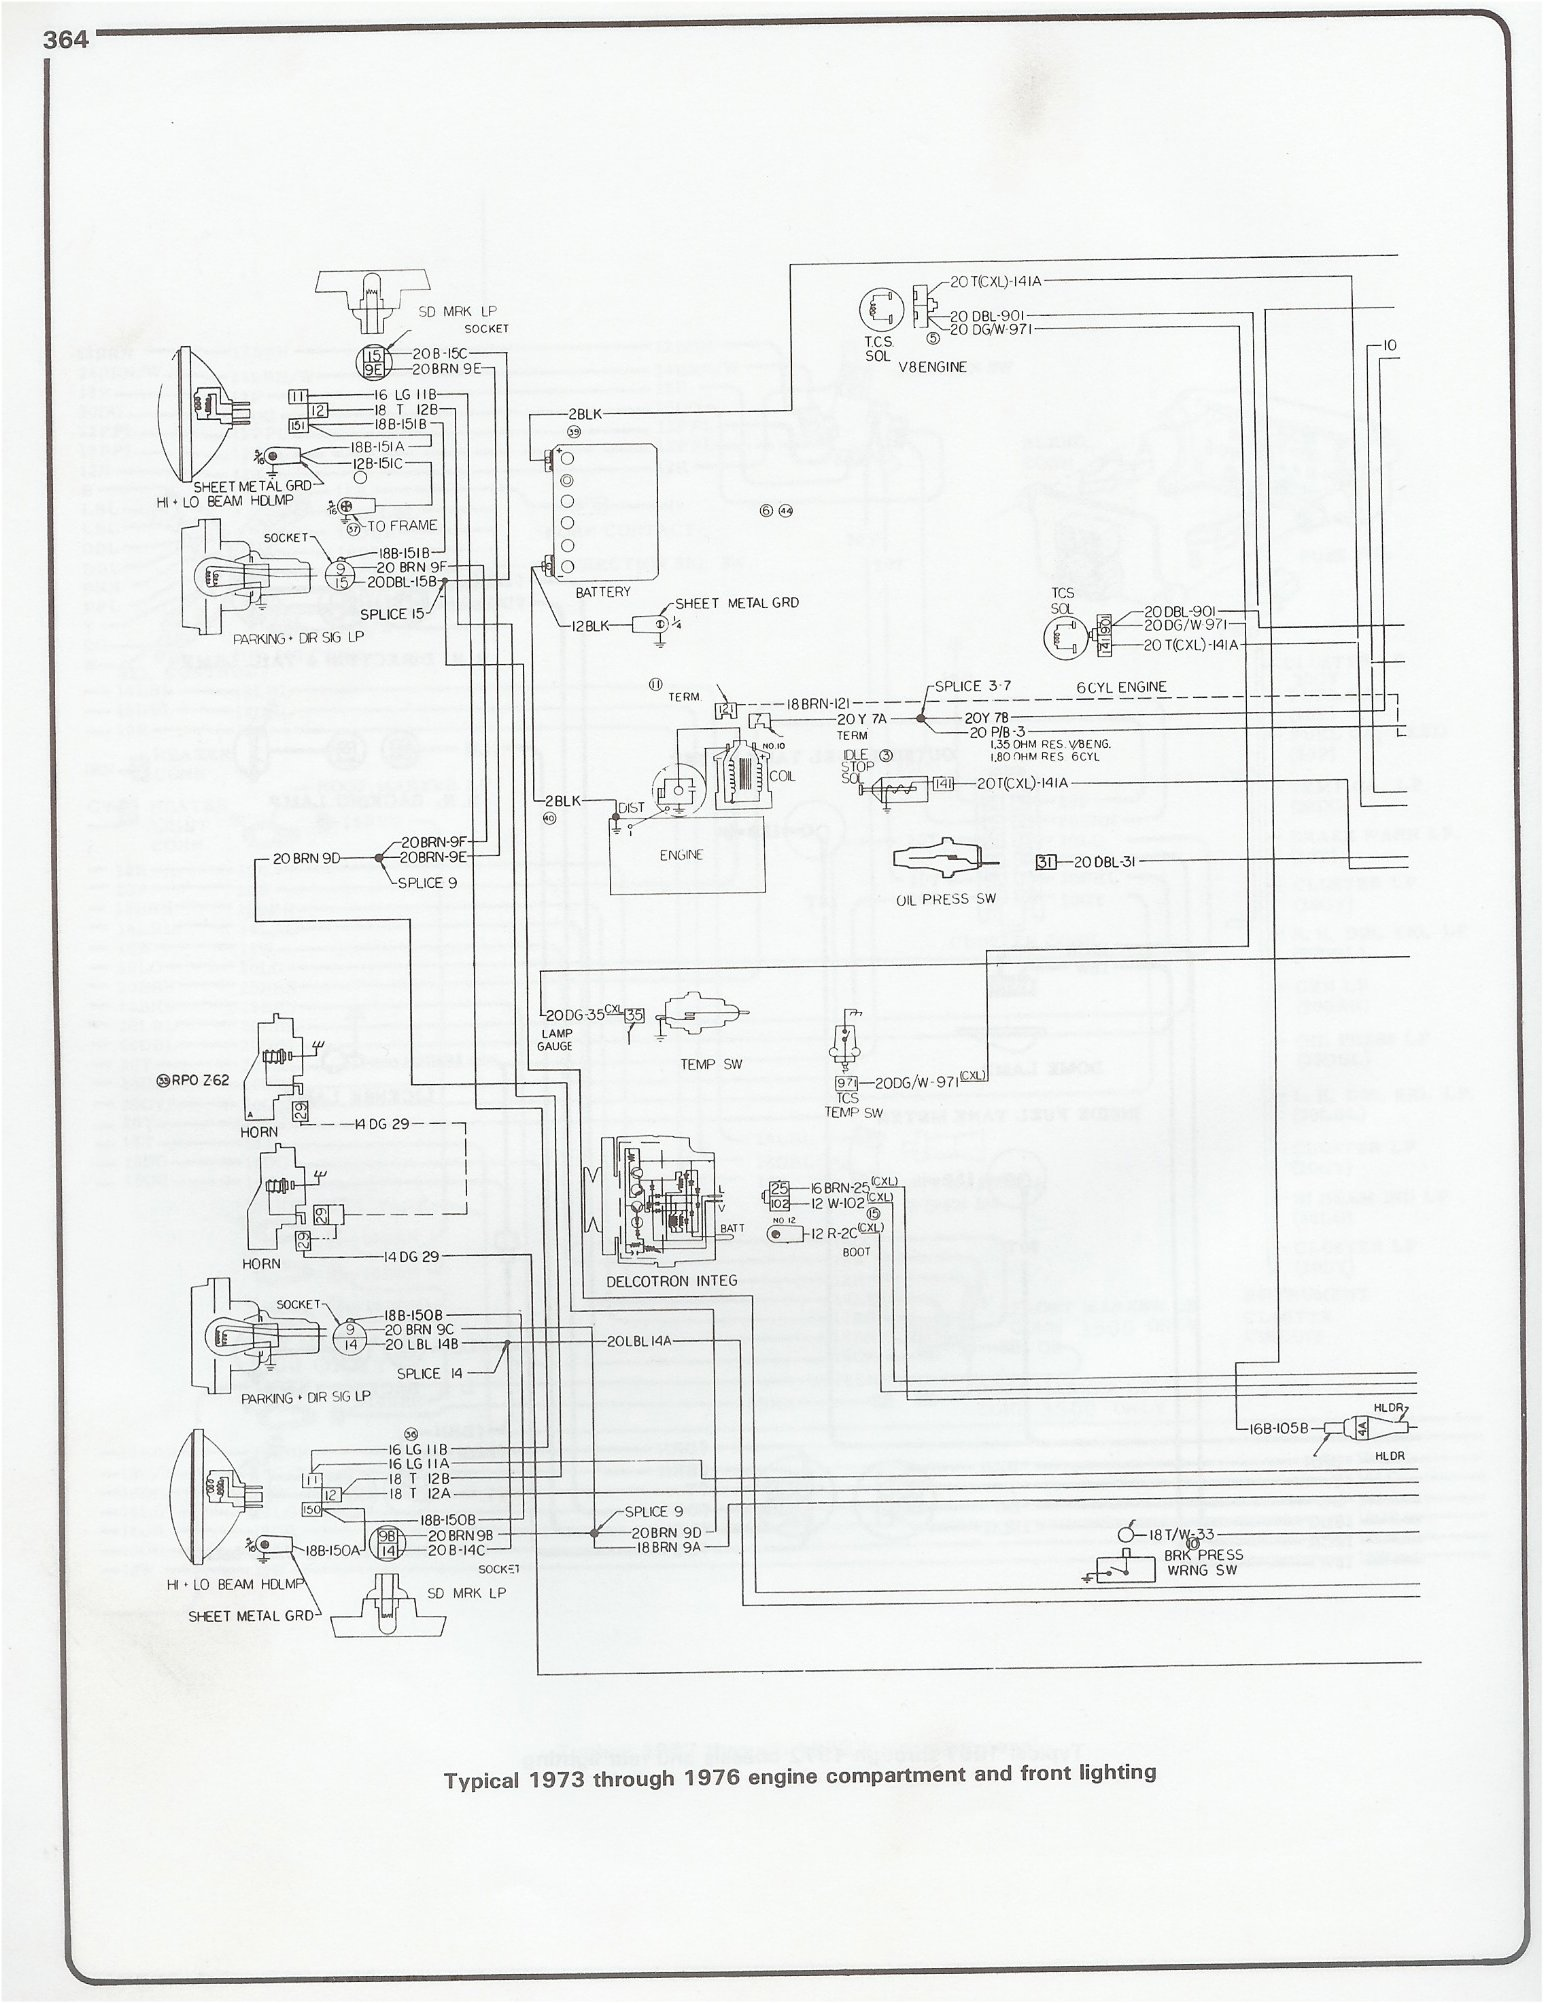 73 76_eng_frt_light complete 73 87 wiring diagrams 1976 chevy truck wire harness at webbmarketing.co